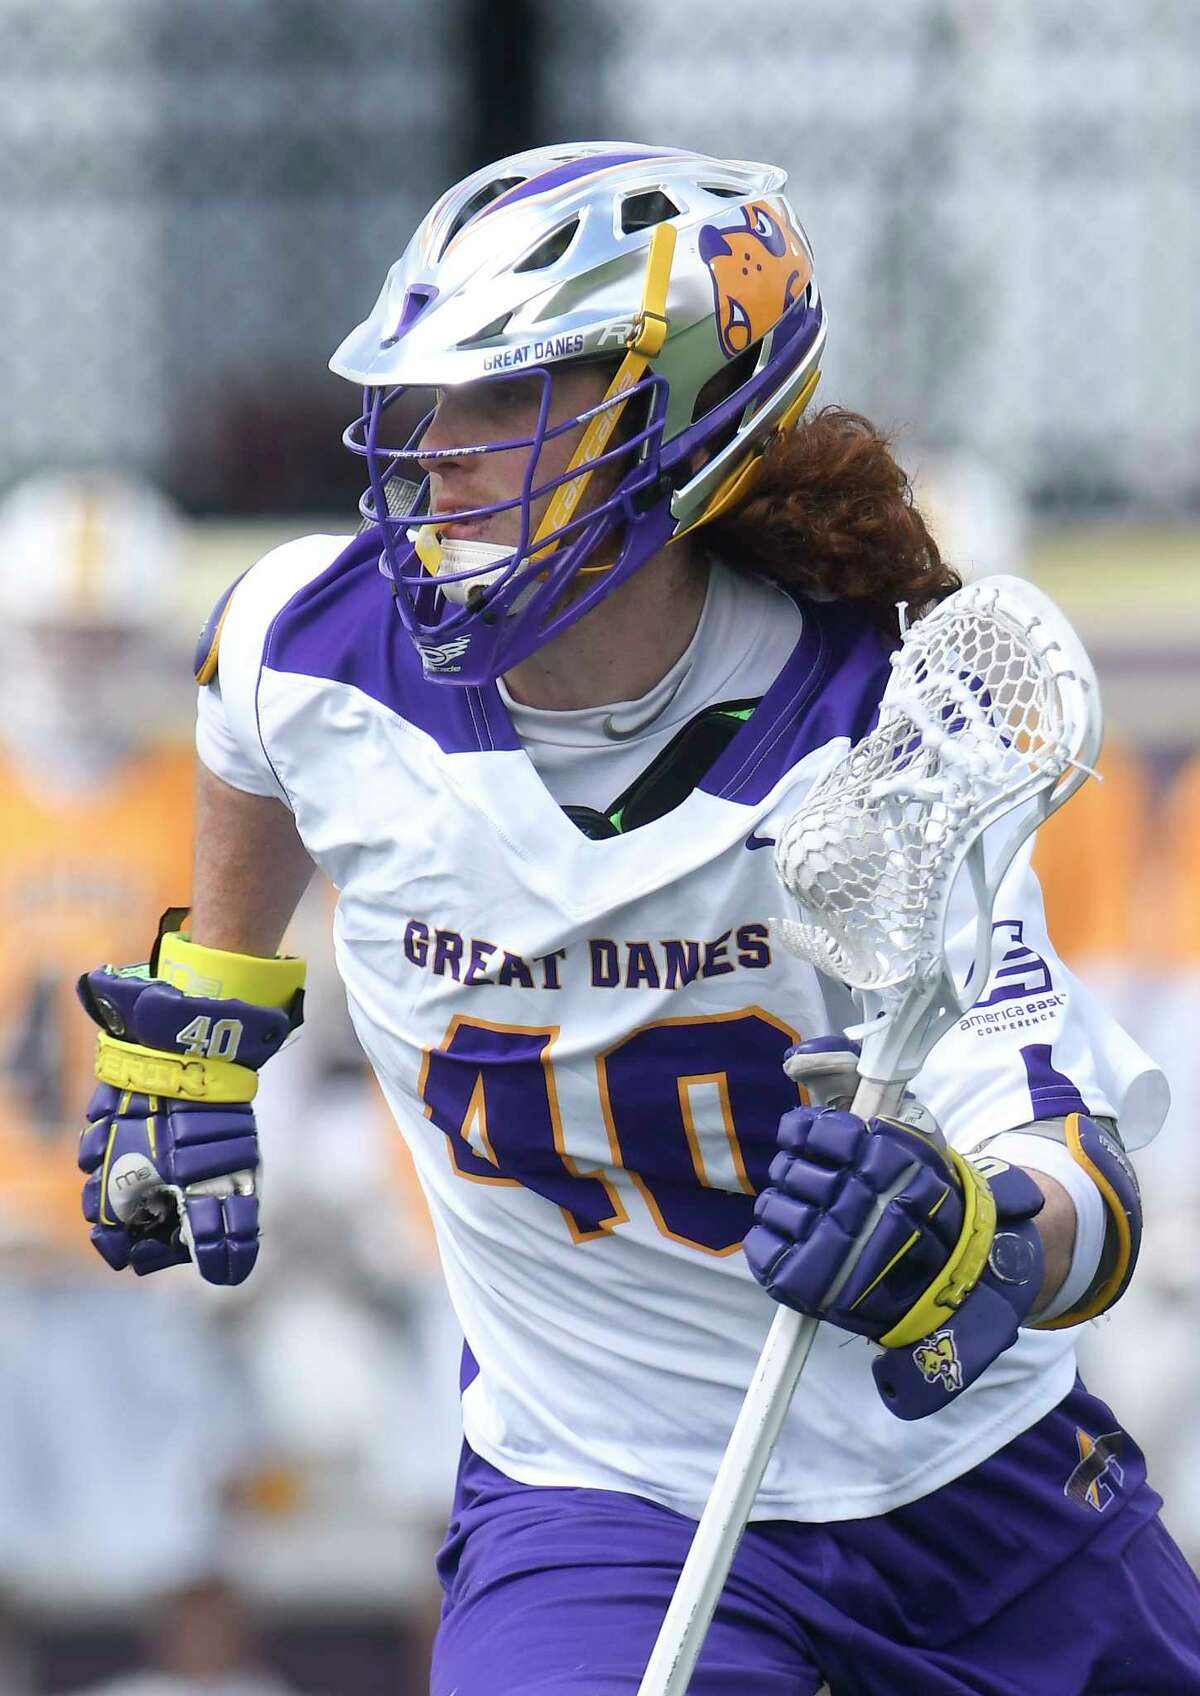 UAlbany's Kyle McClancy (40) moves the ball against UMBC's during a NCAA Division I men's lacrosse game on Saturday, April 7, 2017, in Albany, N.Y. (Hans Pennink / Special to the Times Union) ORG XMIT: HP117